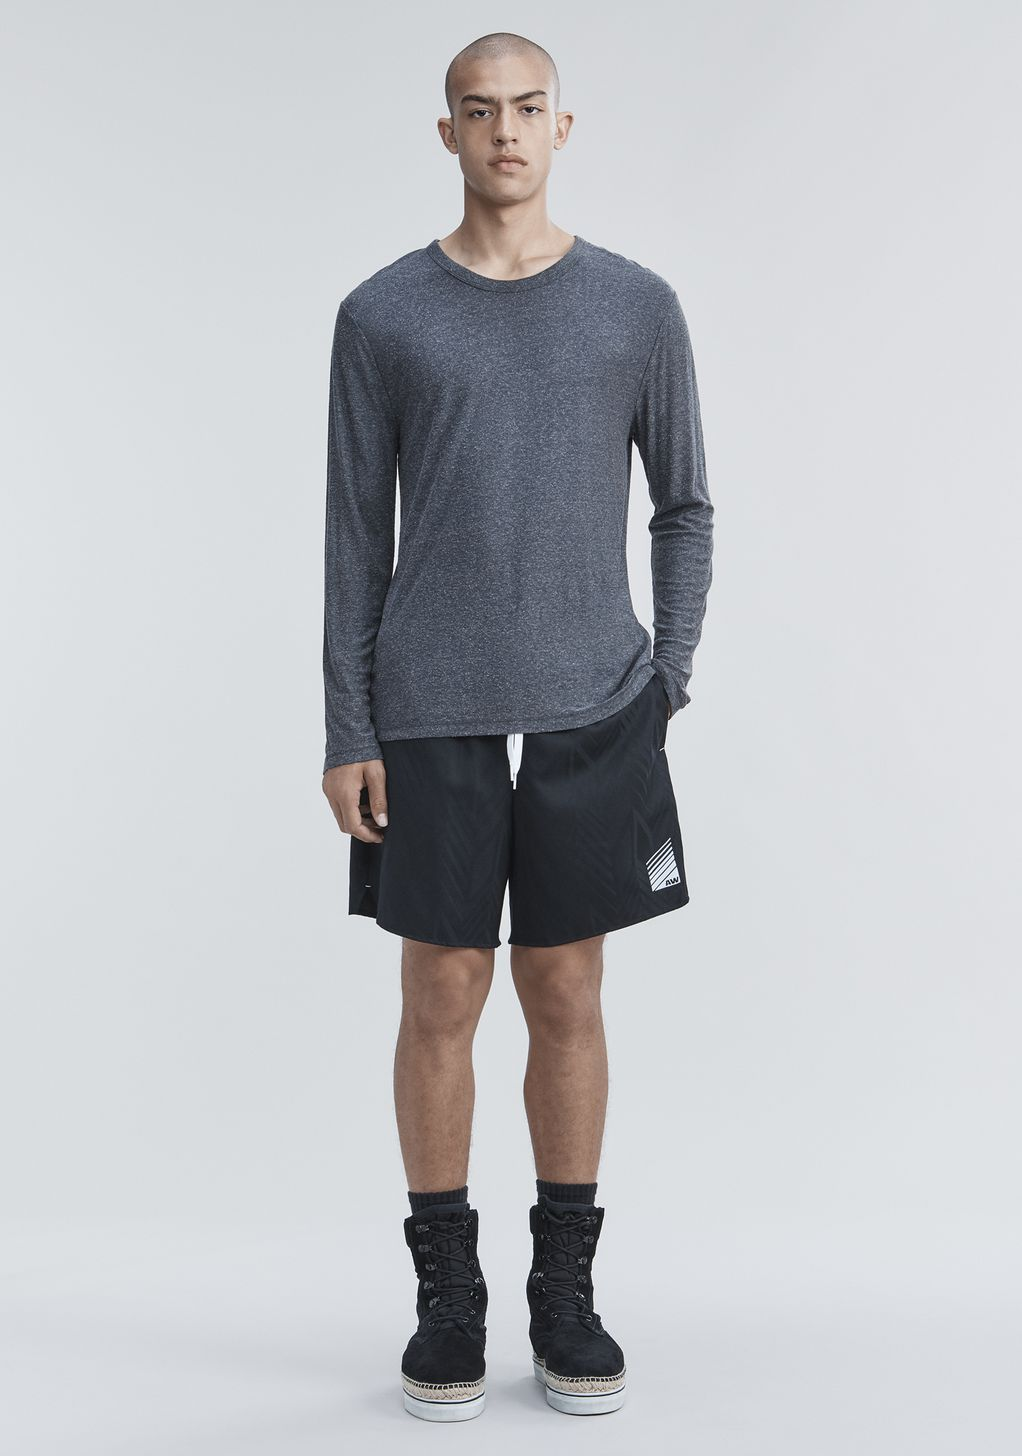 Alexander Wang Slub Rayon Silk Long Sleeve Tee Long Sleeve